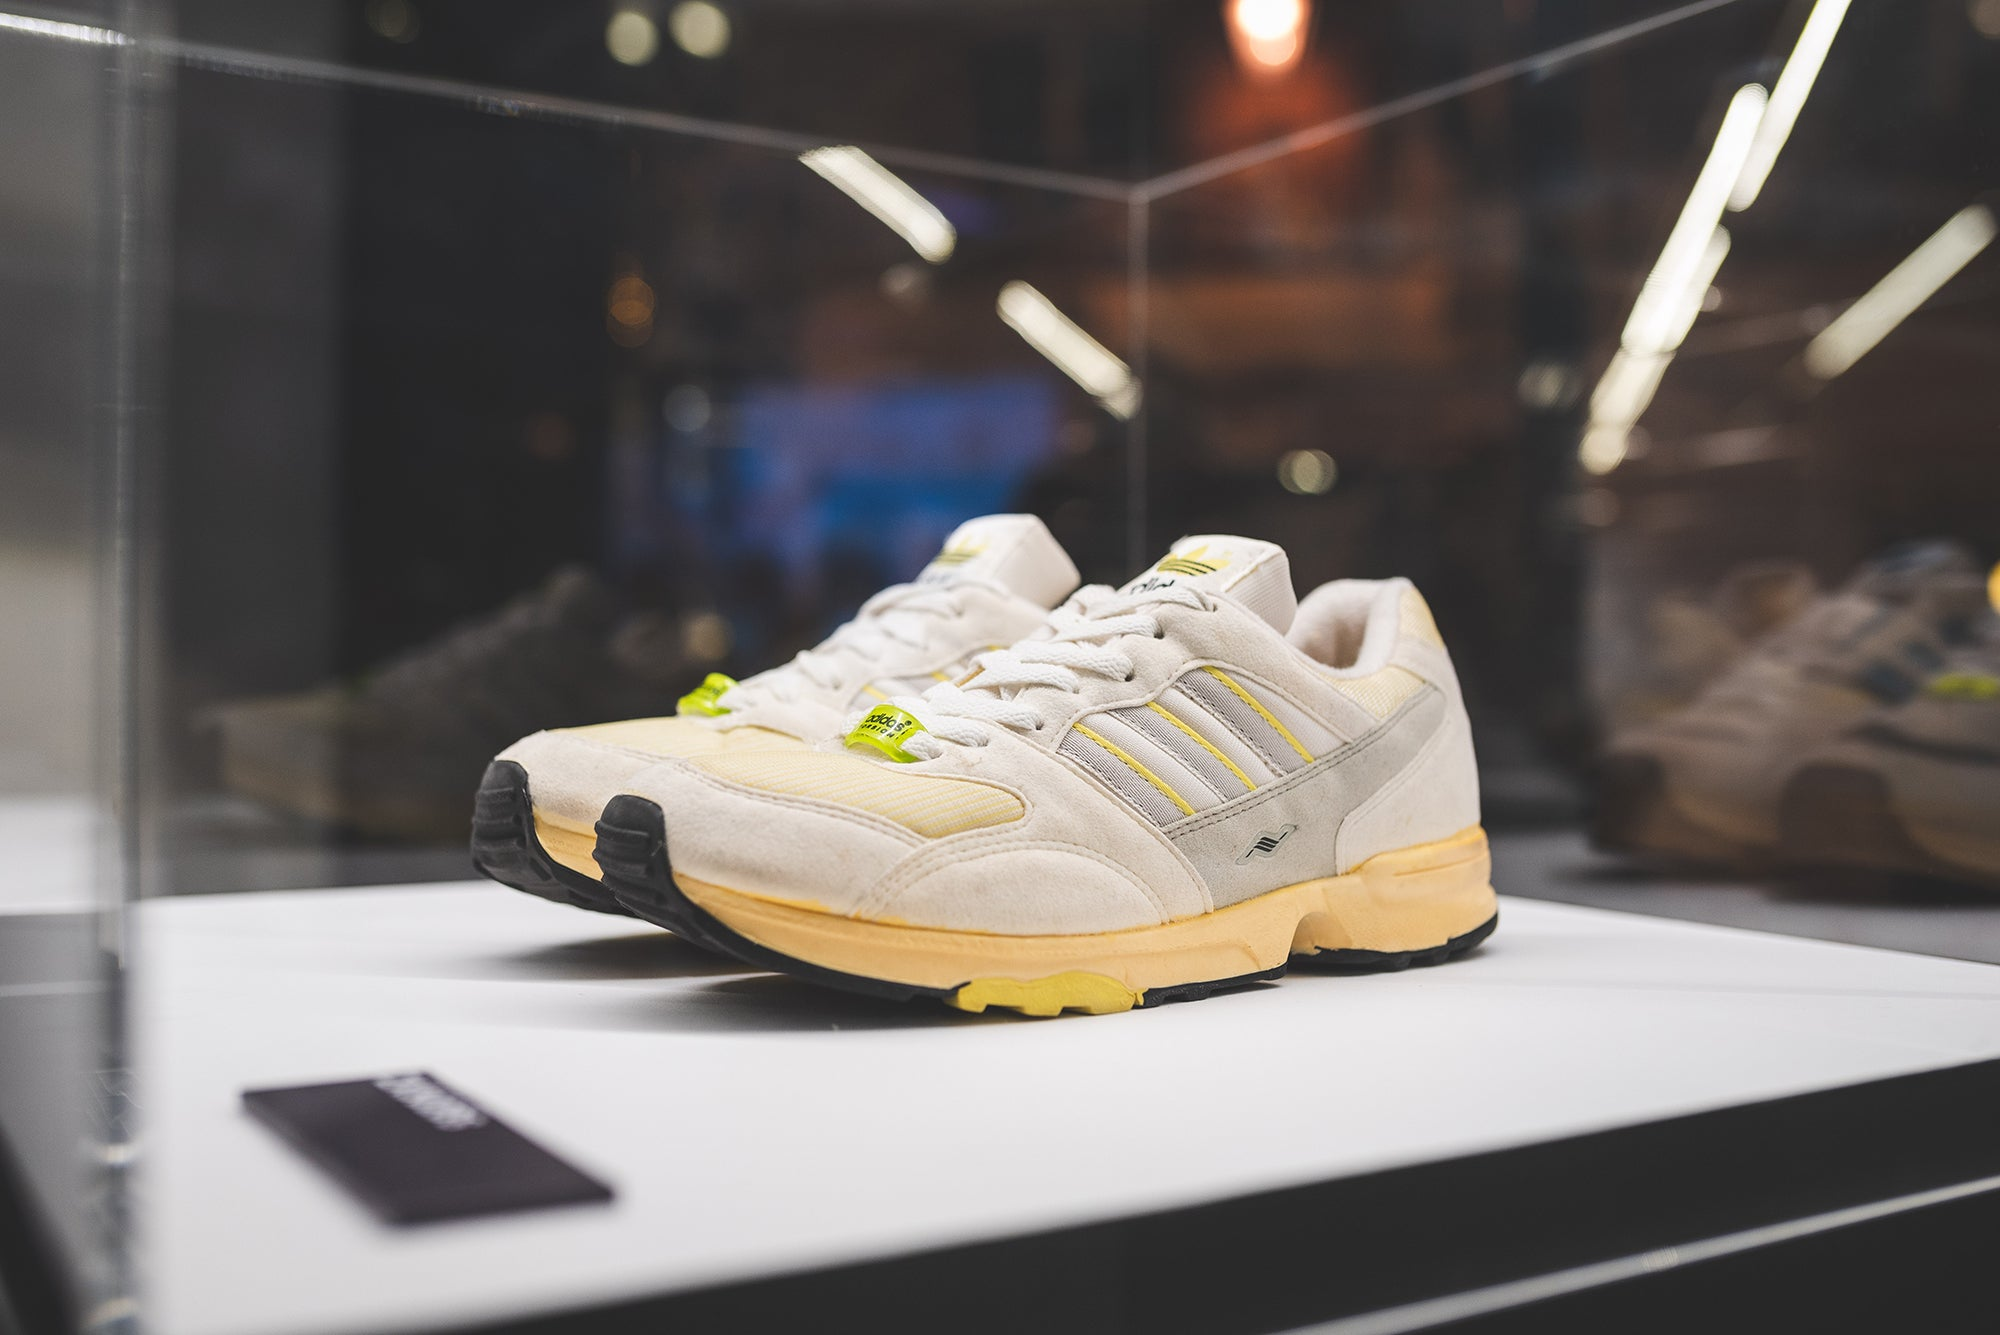 acba8d7f9510d Check out some of our favourite pieces from the exhibition below. Thanks to  those behind the exhibition for the words above and to adidas for having us.